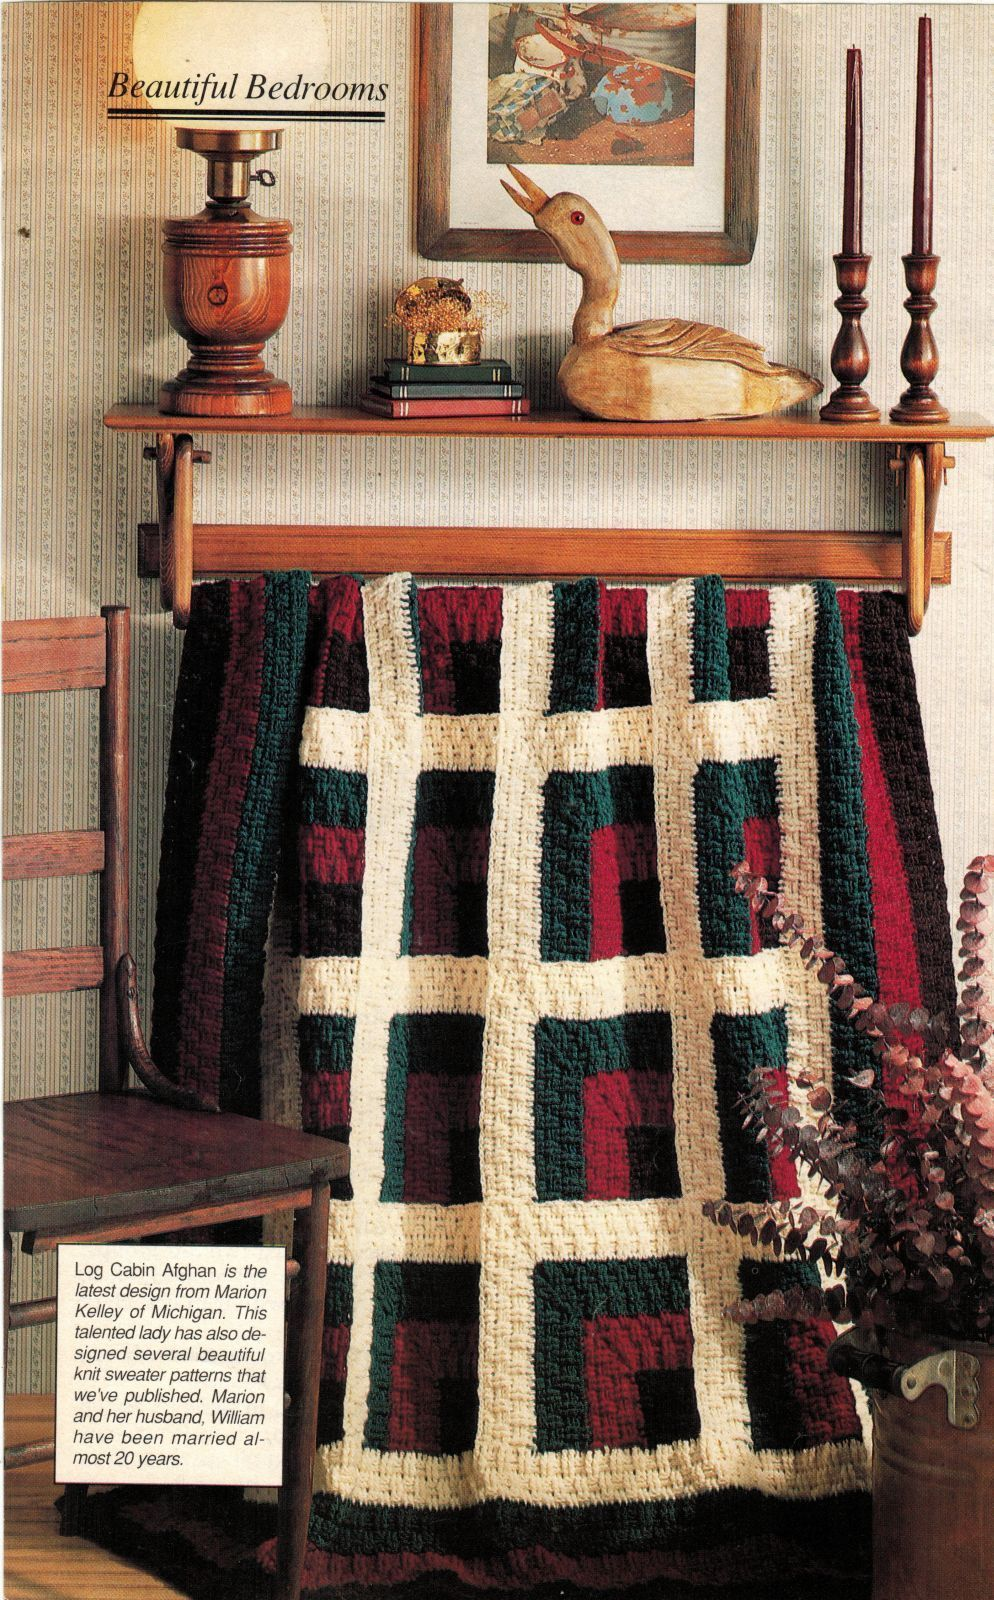 3X  From The Past Flower Doily Motif Bedspread Log Cabin Afghan Crochet Pattern image 3